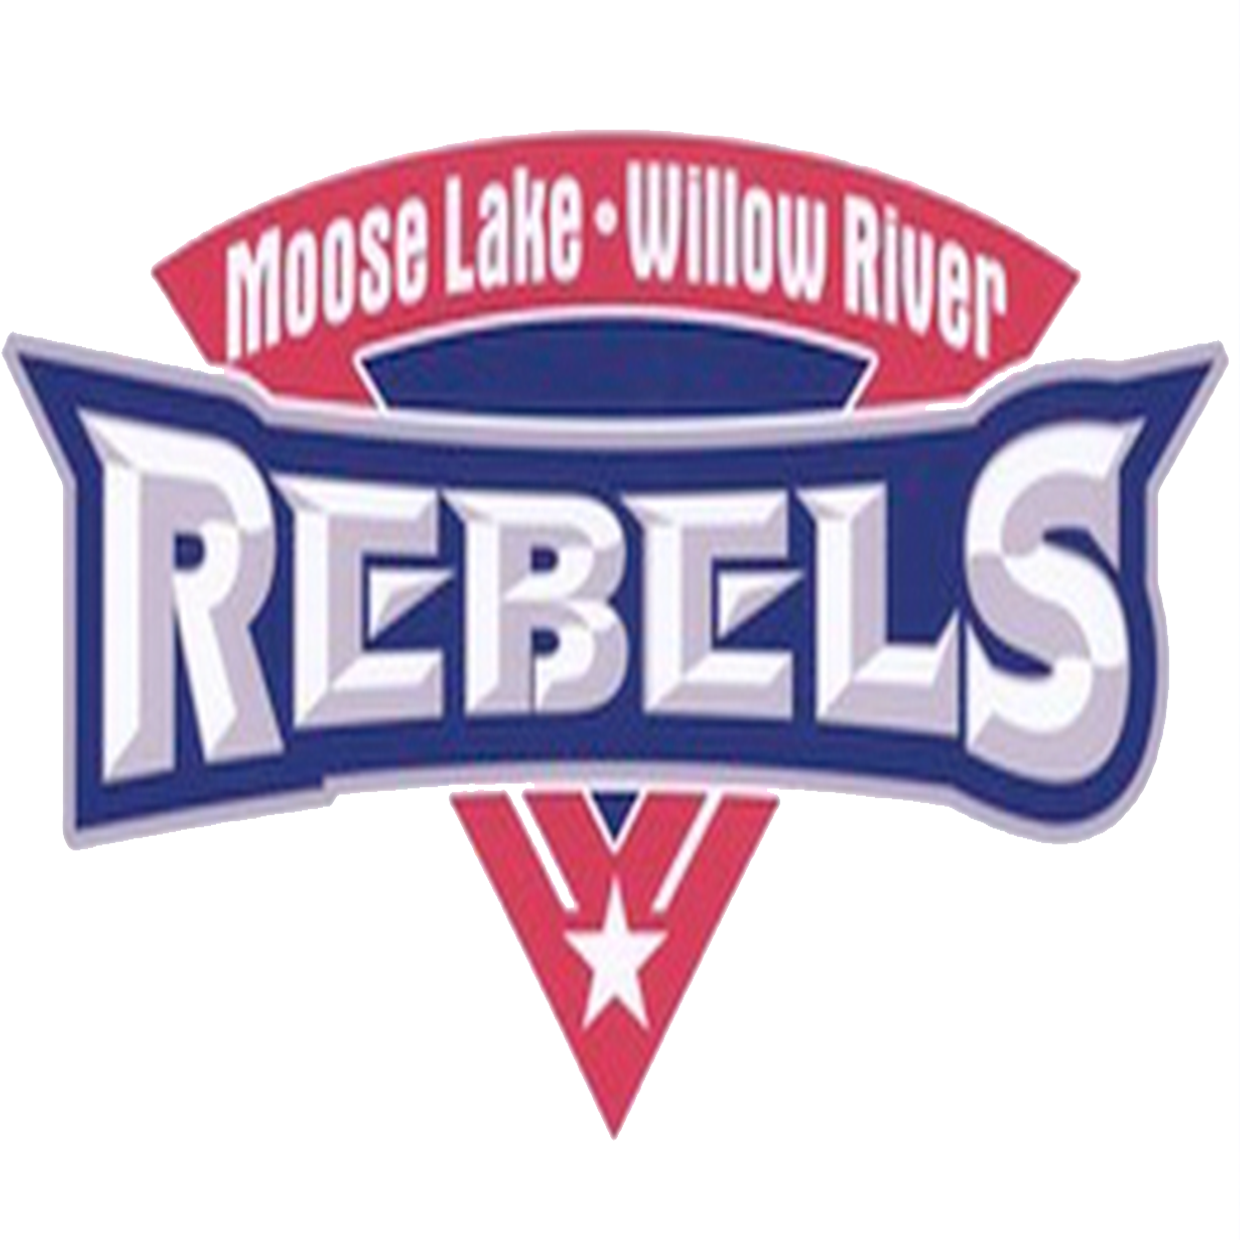 Moose lake willow river  mn  rebels logo